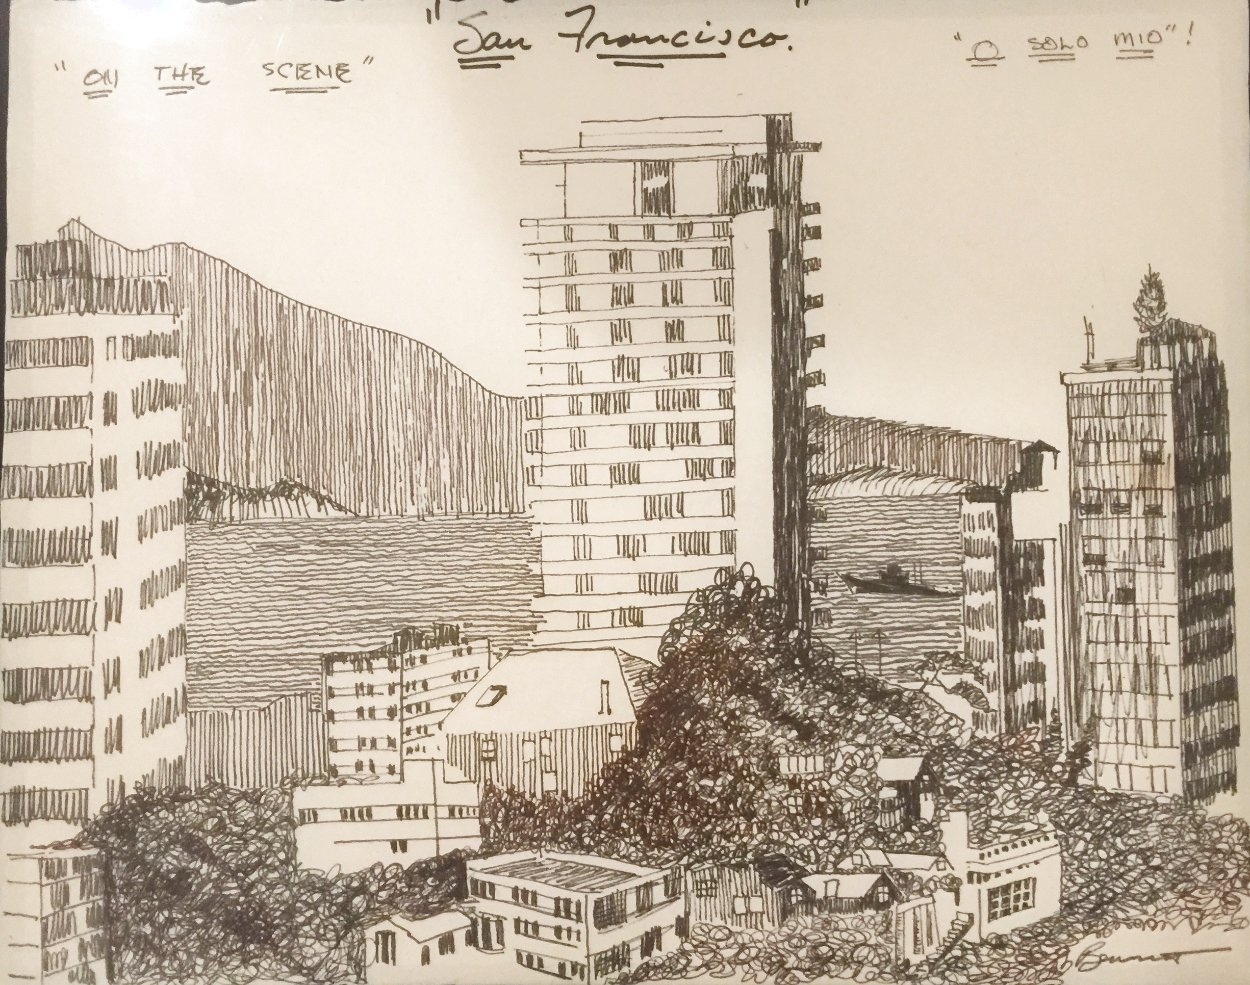 O Solo Mio on the Scene - Powell St. San Francisco Drawing 18x24 Works on Paper (not prints) by Tony Bennett